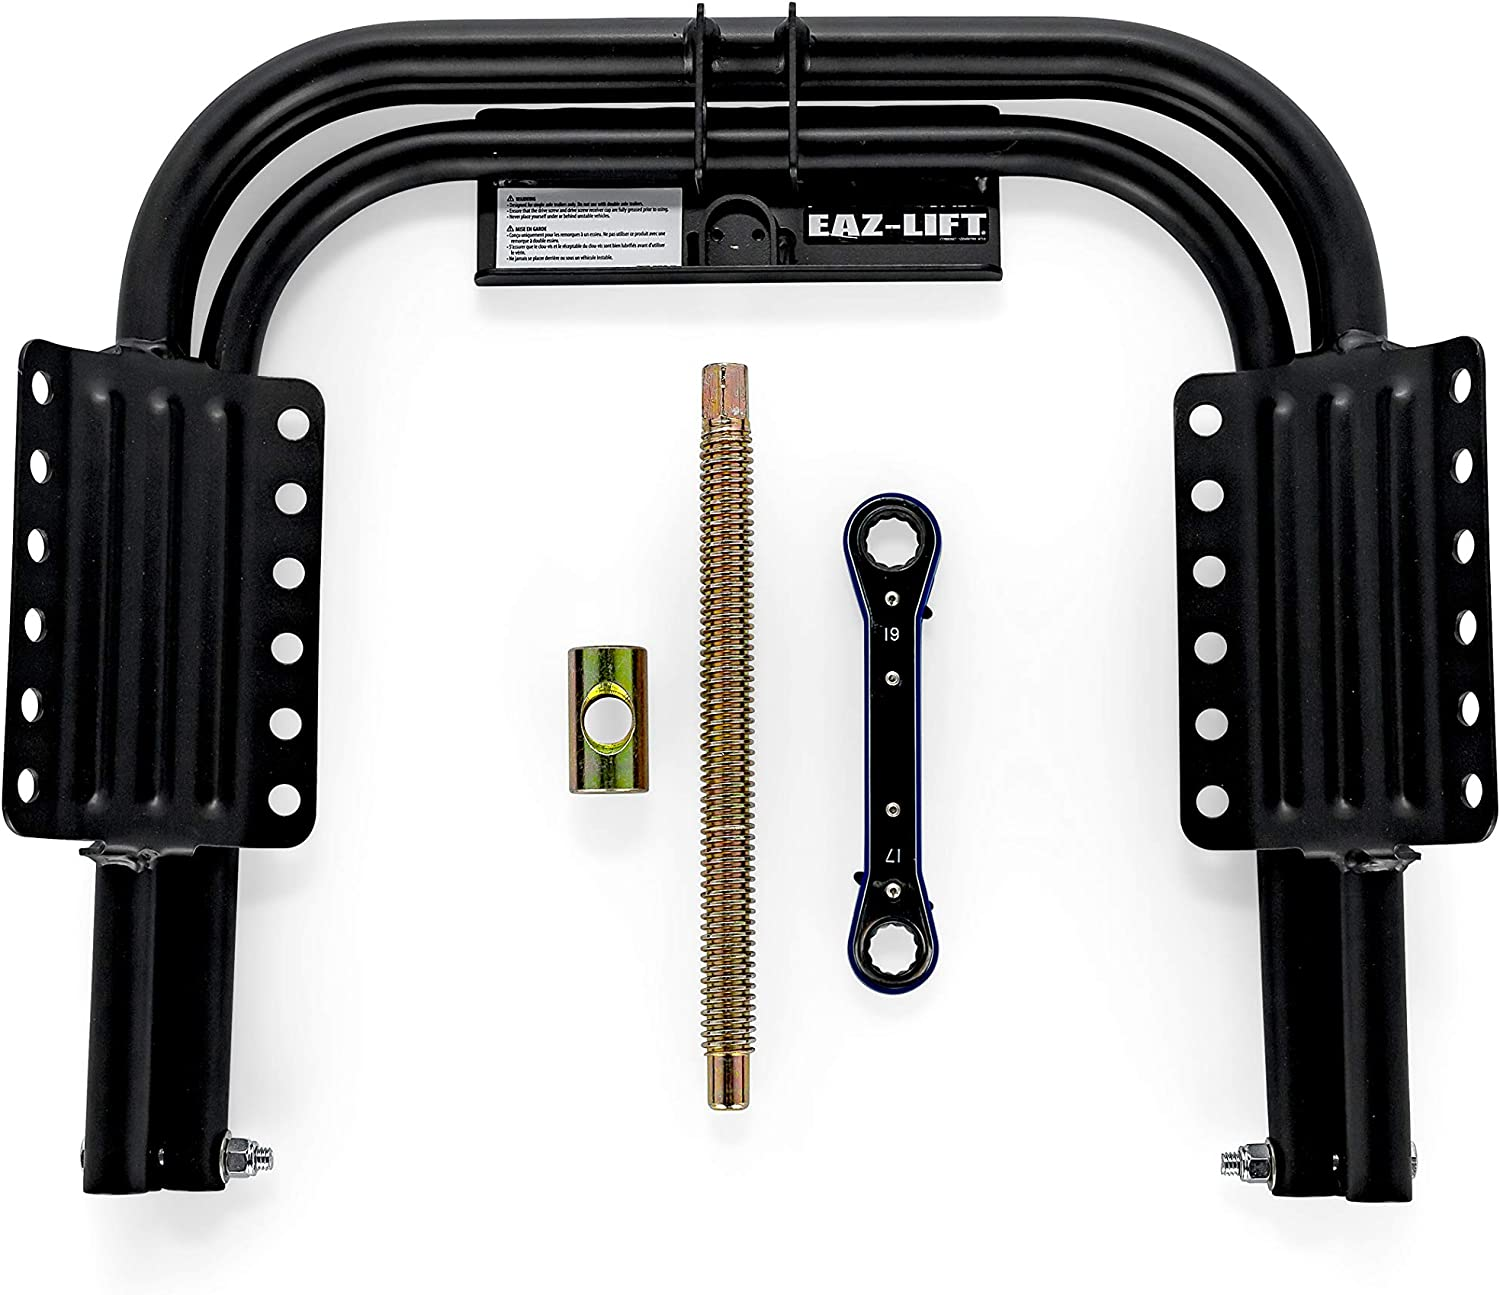 48845 14 15-inch Wheels EAZ LIFT Light Weight RV Tire Allows for Easy Leveling Without Blocks or Ramps-Fits Most 13